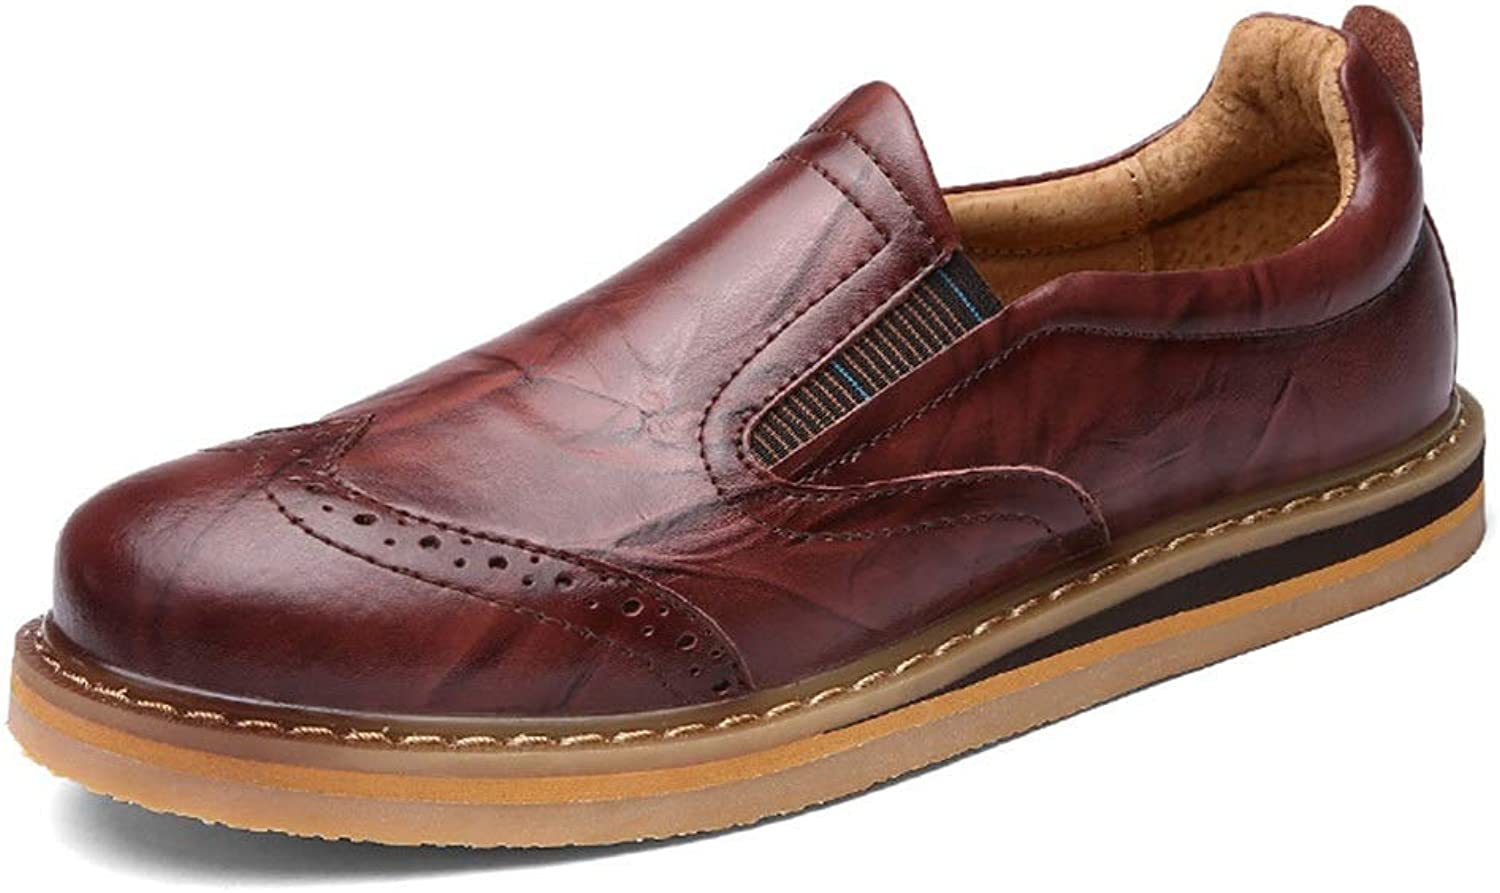 Men's Fashion shoes Men's Casual shoes Low to Help shoes Men's shoes Brock Carved Leather shoes Leather Comfortable